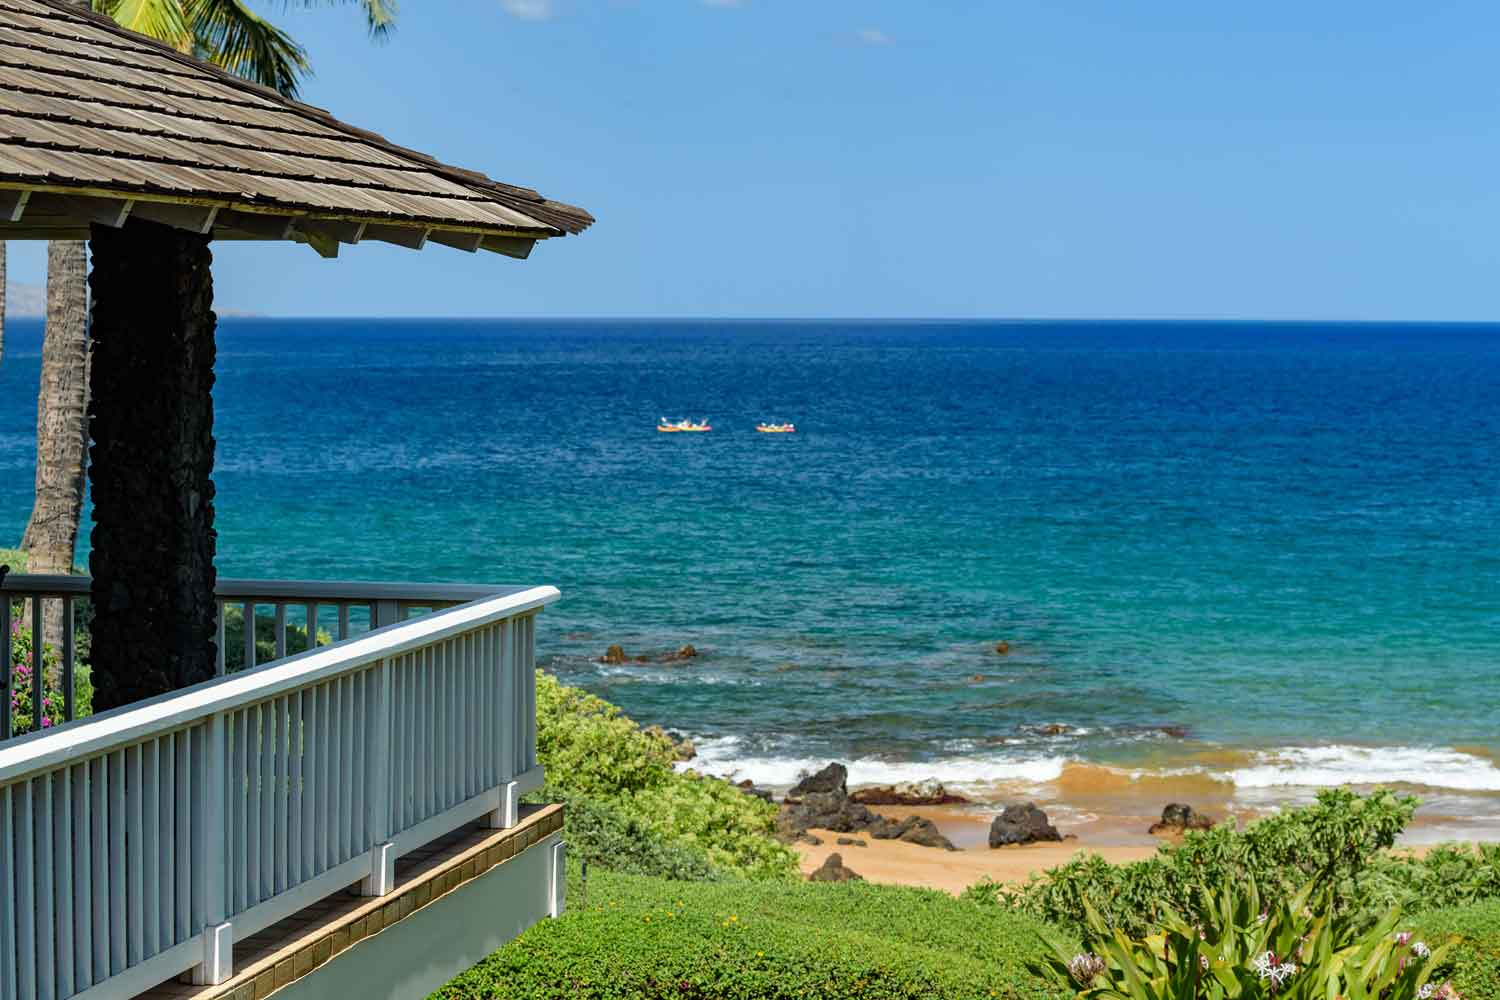 <b>Makena, Hawaii</b><br/><i>3 Bedrooms, 2,968 sq. ft.</i><br/>Beachfront home on Secret Beach